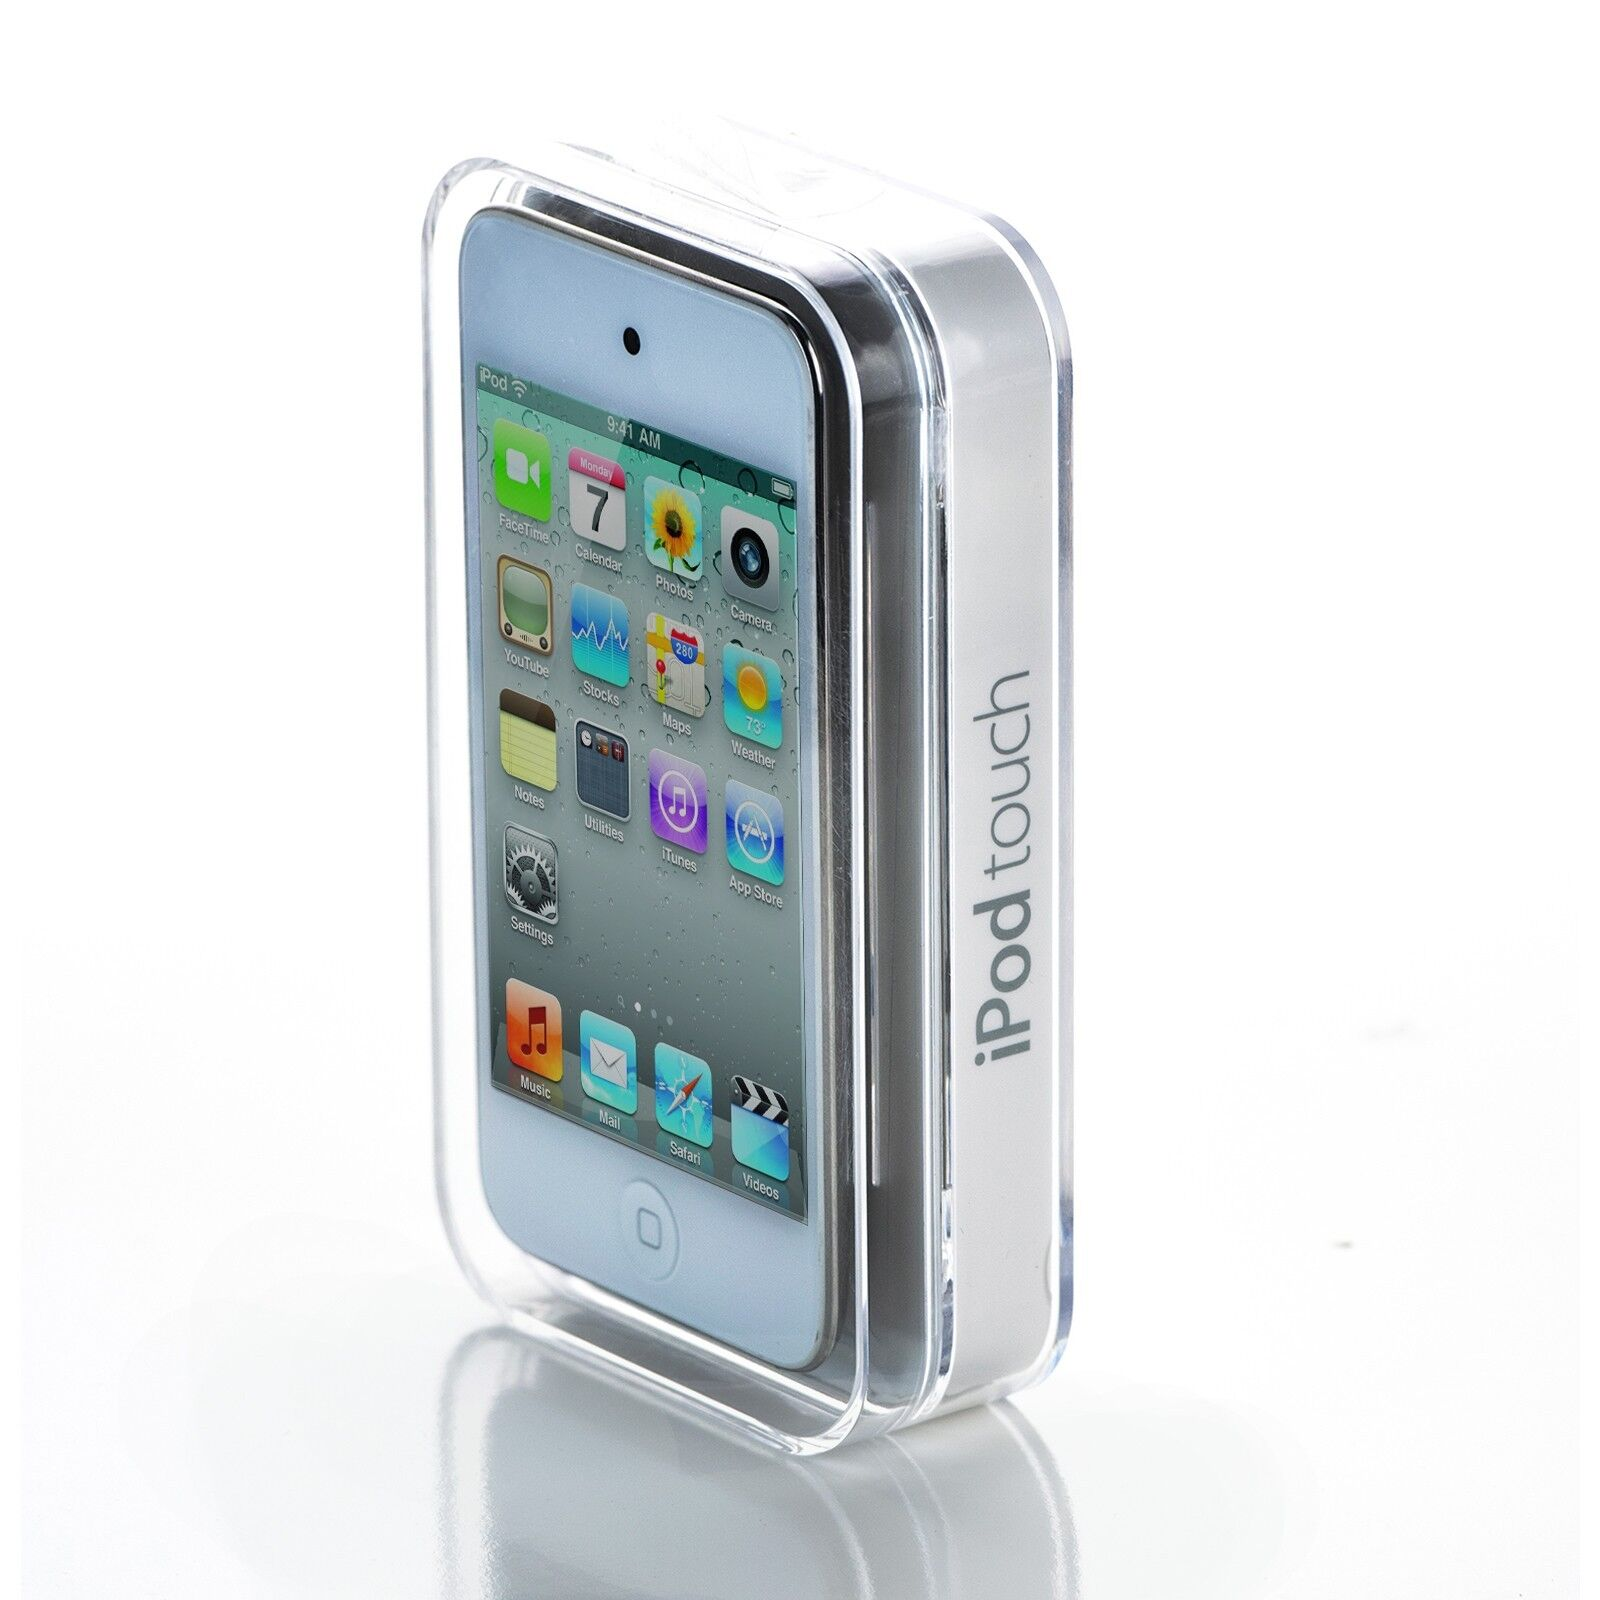 apple ipod touch 4th generation white 8 gb mp3 music. Black Bedroom Furniture Sets. Home Design Ideas